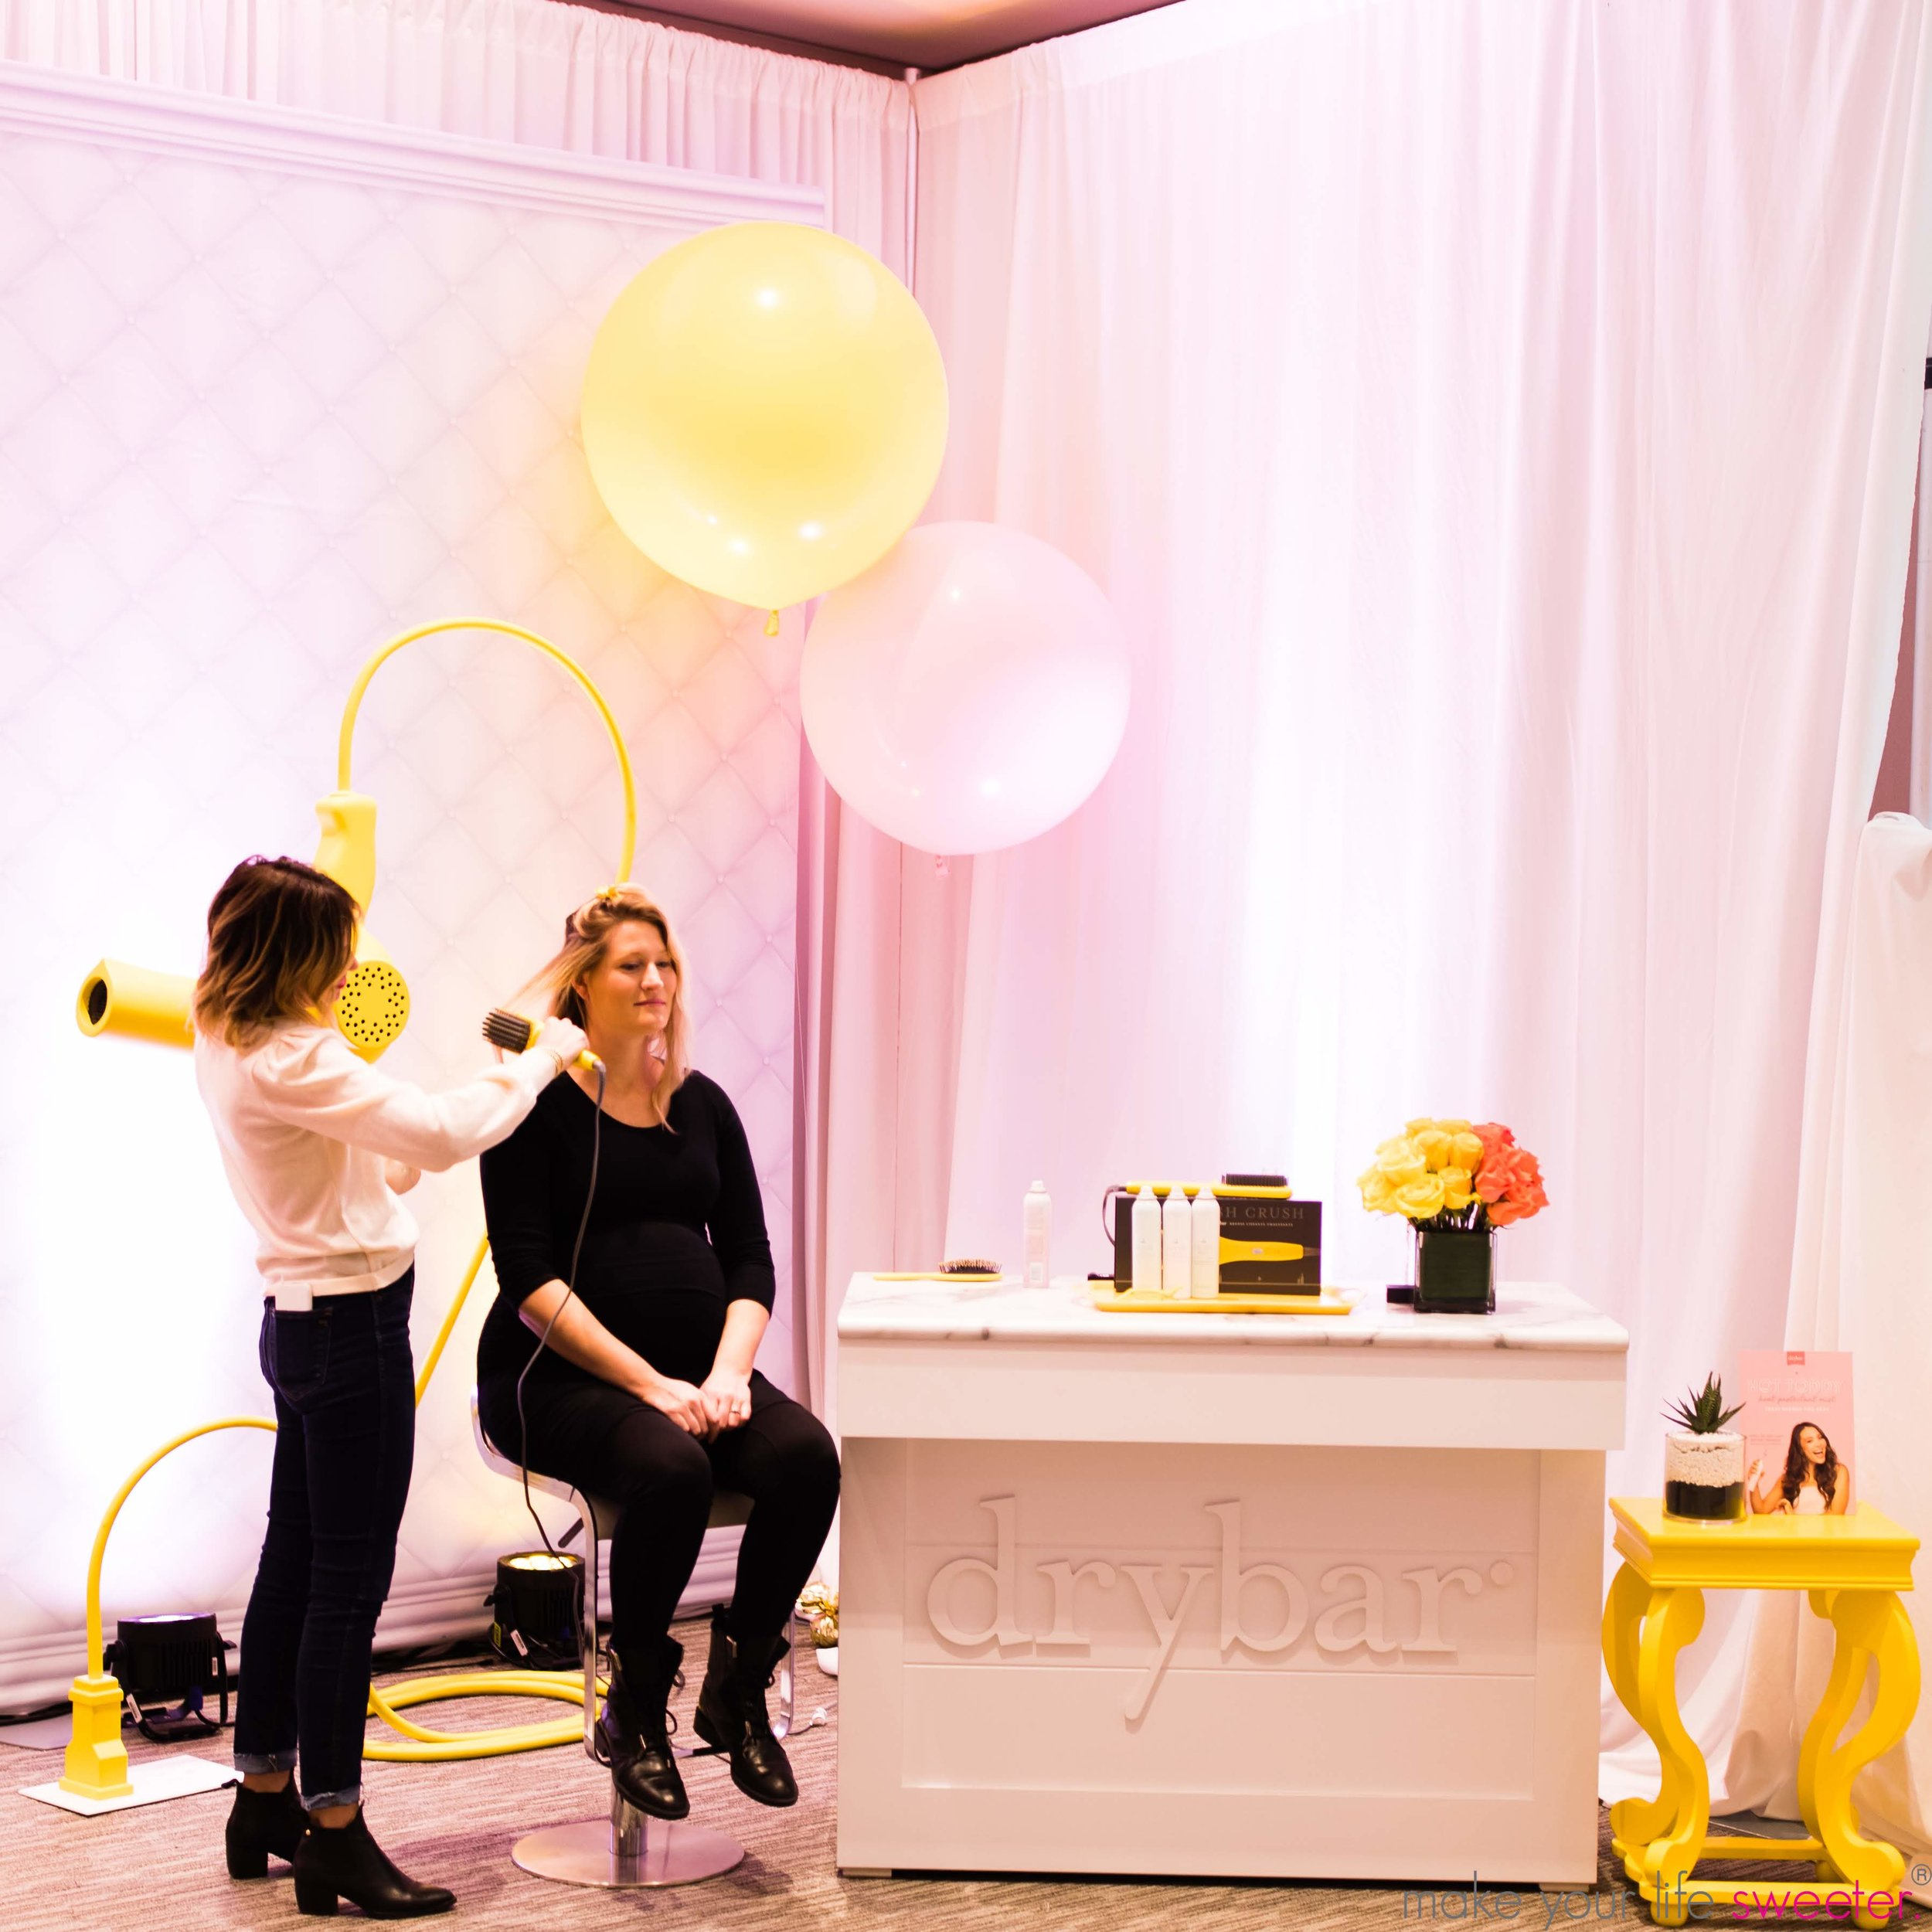 Make Your Life Sweeter Events - DryBar event with Alli Webb